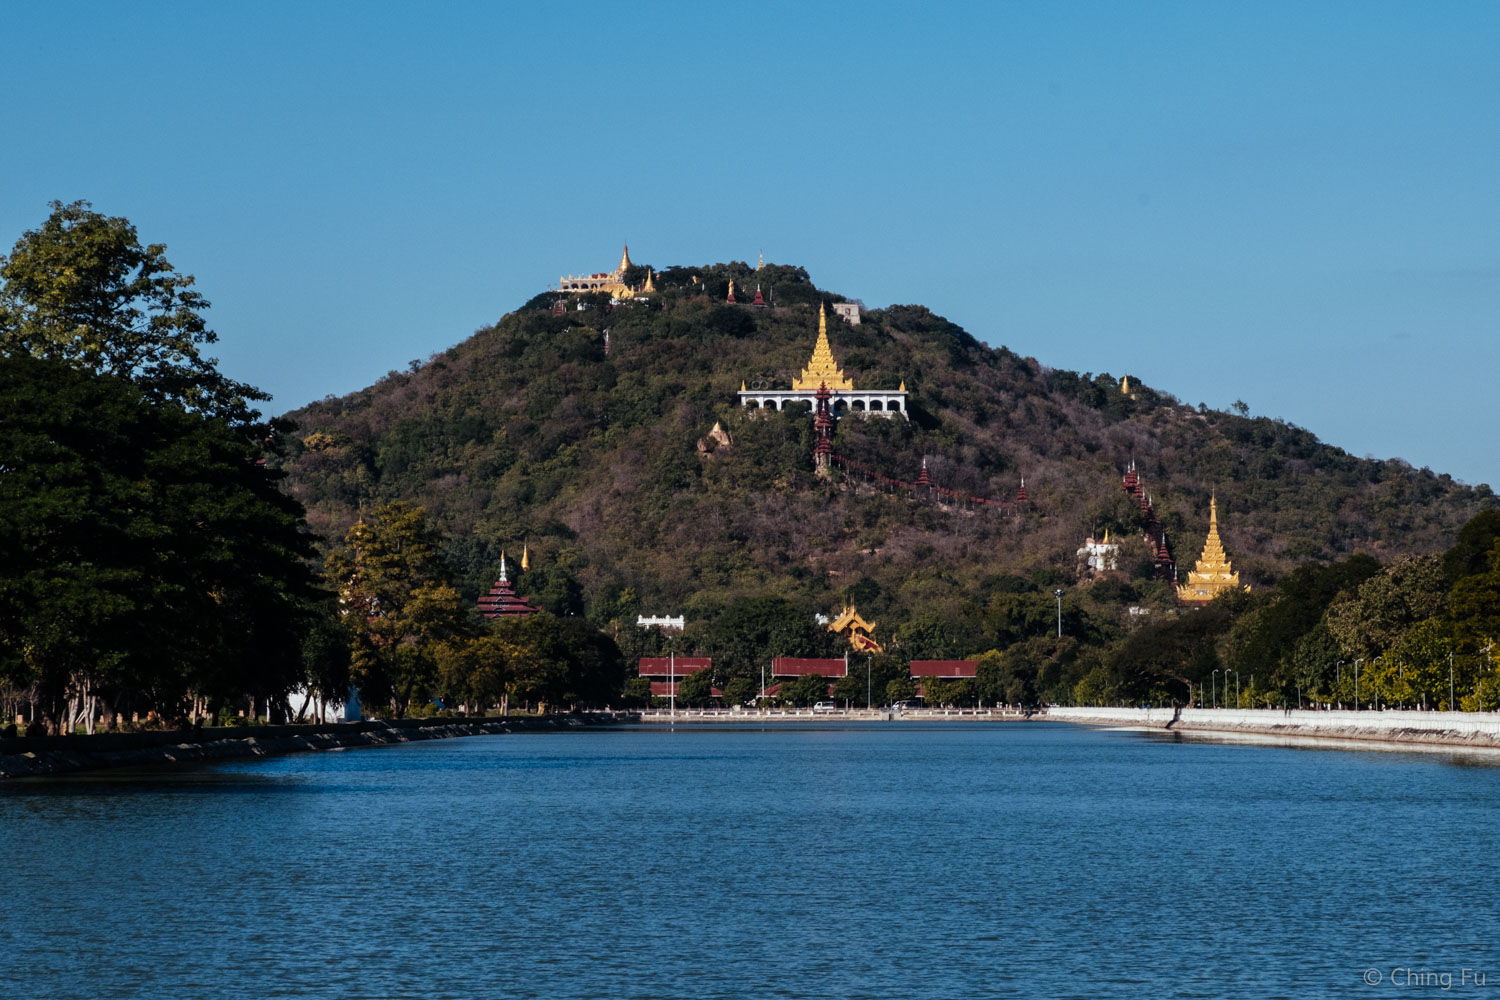 View of Mandalay Hill from Mandalay Palace's moat. In between the lower two golden spires, you can see the red covered stairway that brings visitors to the summit of Mandalay Hill.